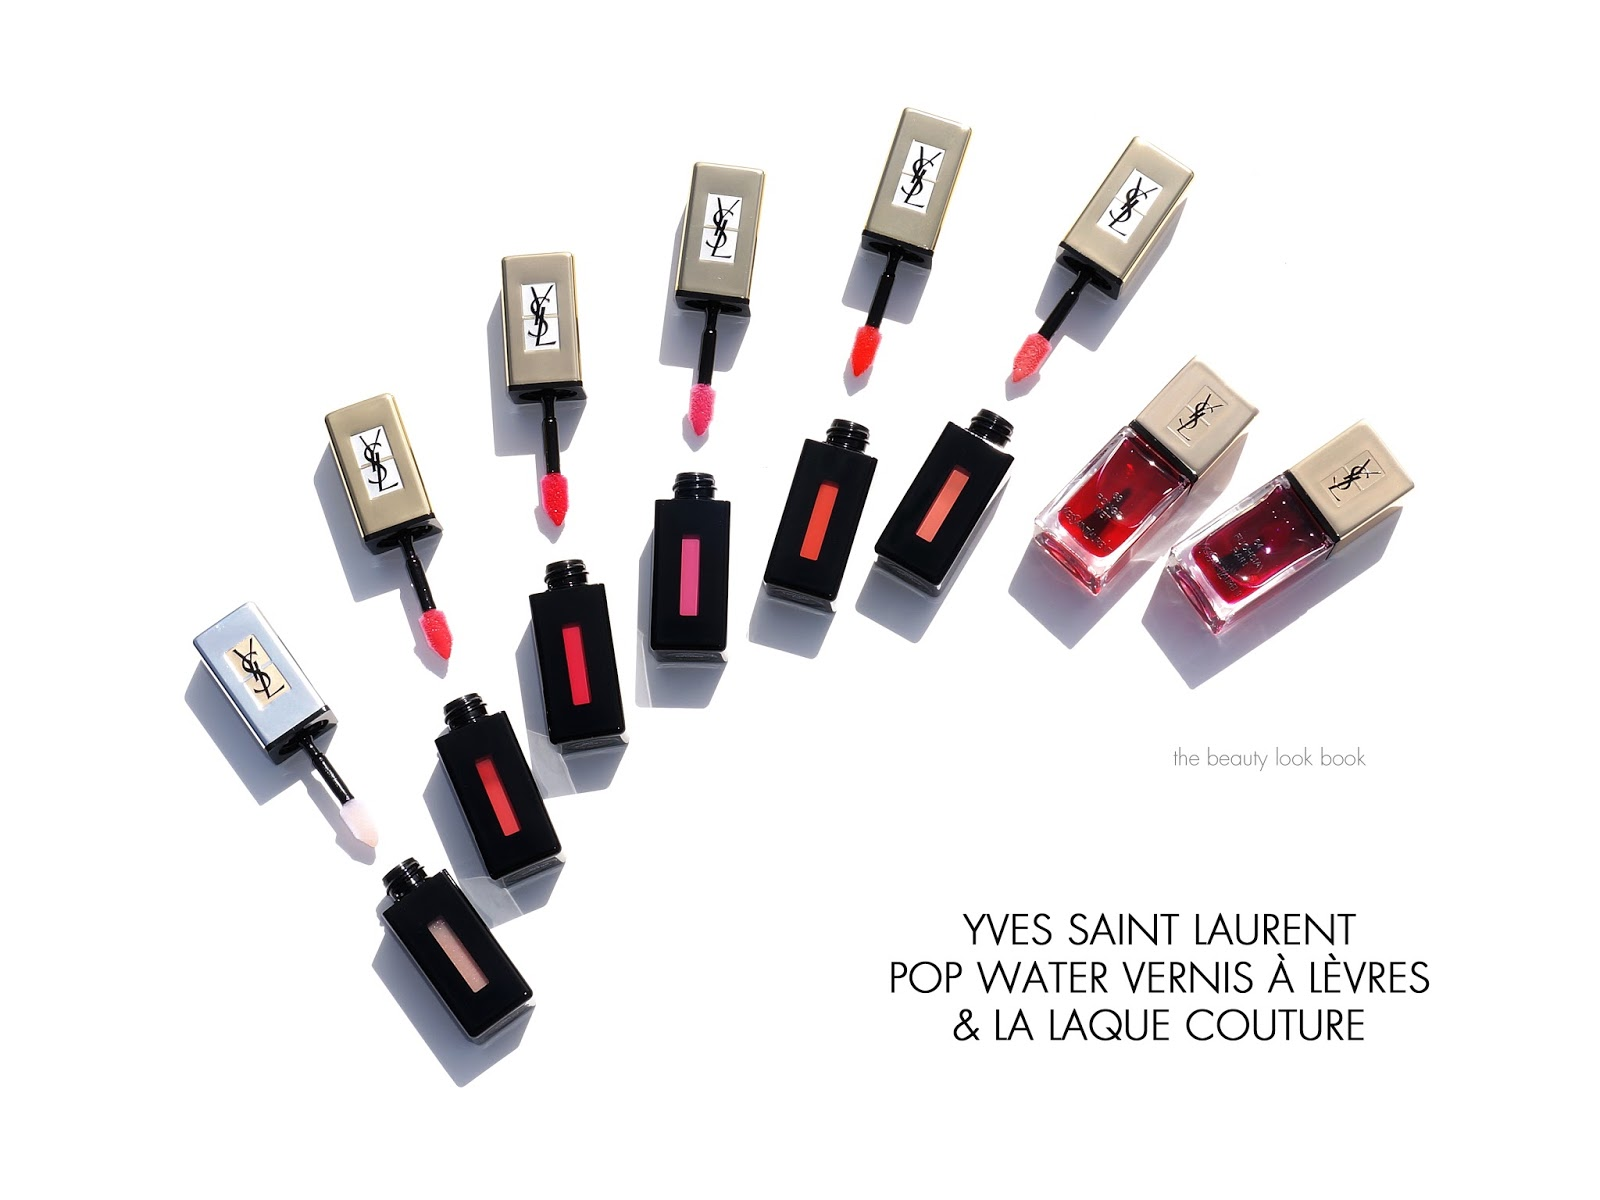 944aef2567c Yves Saint Laurent Pop Water Collection: New Glossy Stains and Nail  Lacquers | The Beauty Look Book